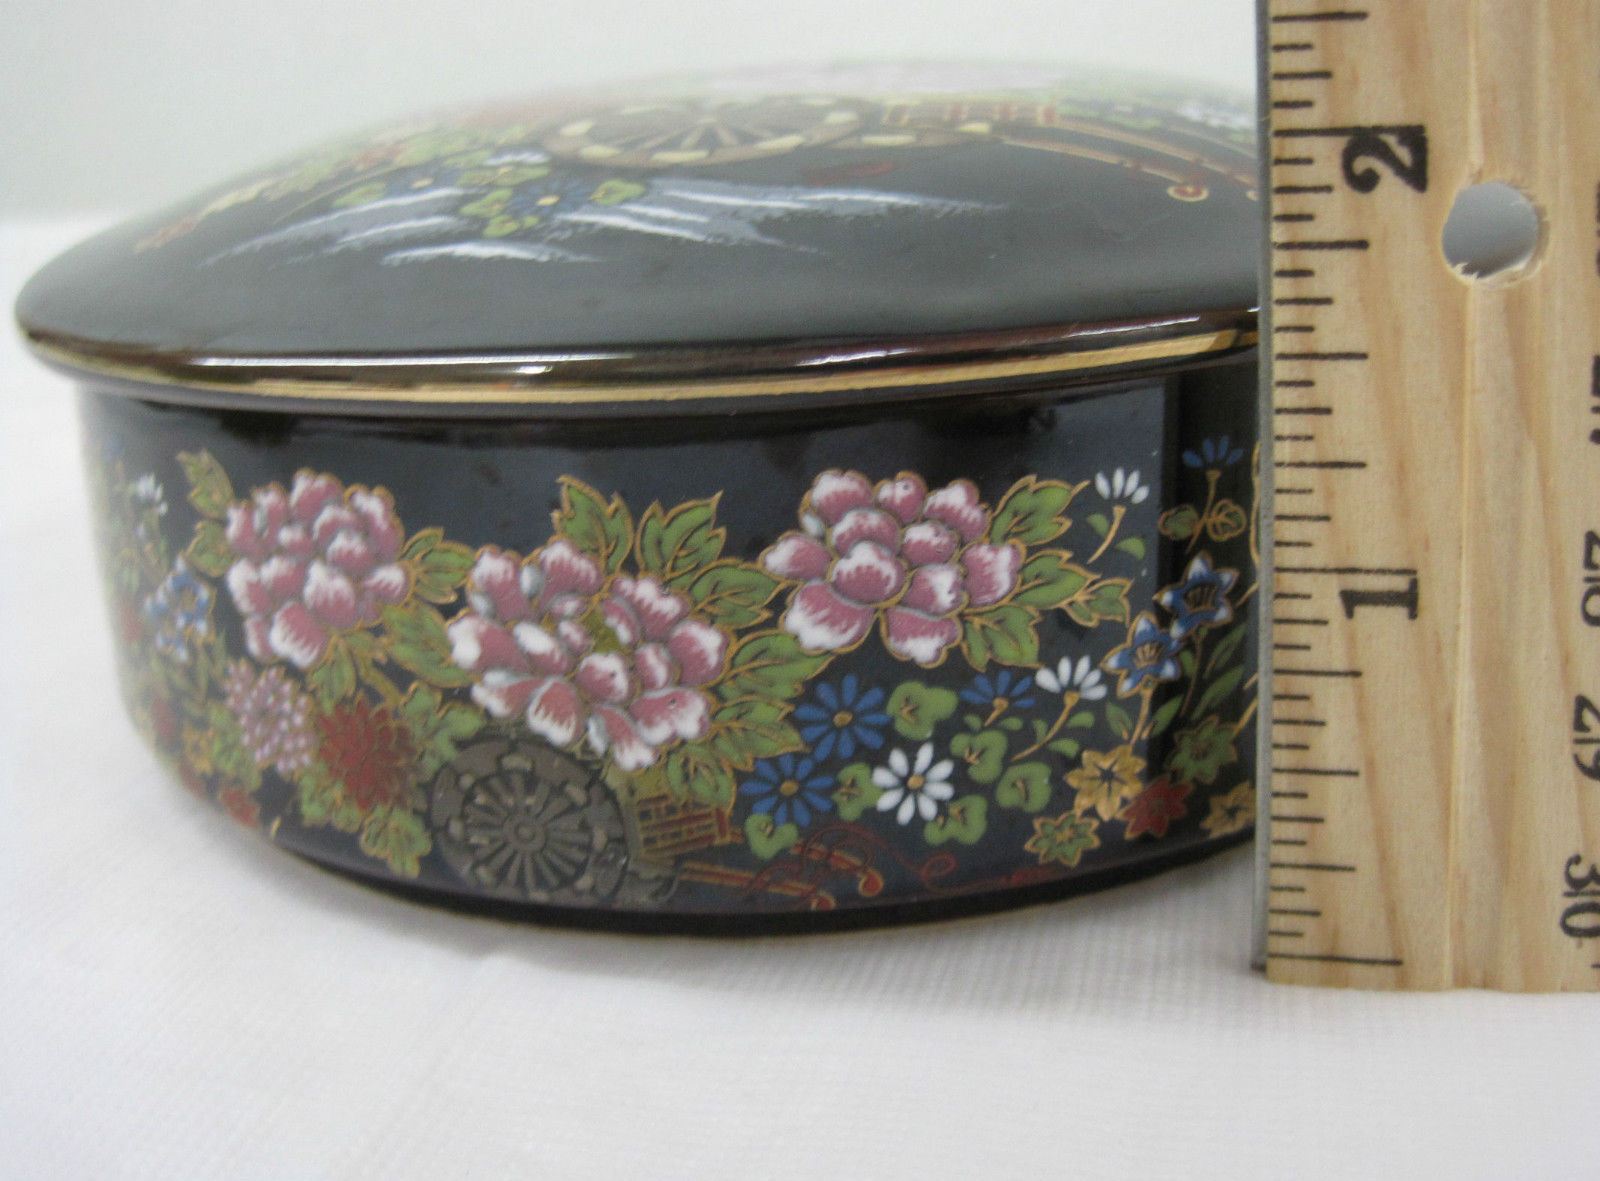 Antique Japanese Imperial Kutani Round Covered Trinket Box Dish Container image 3